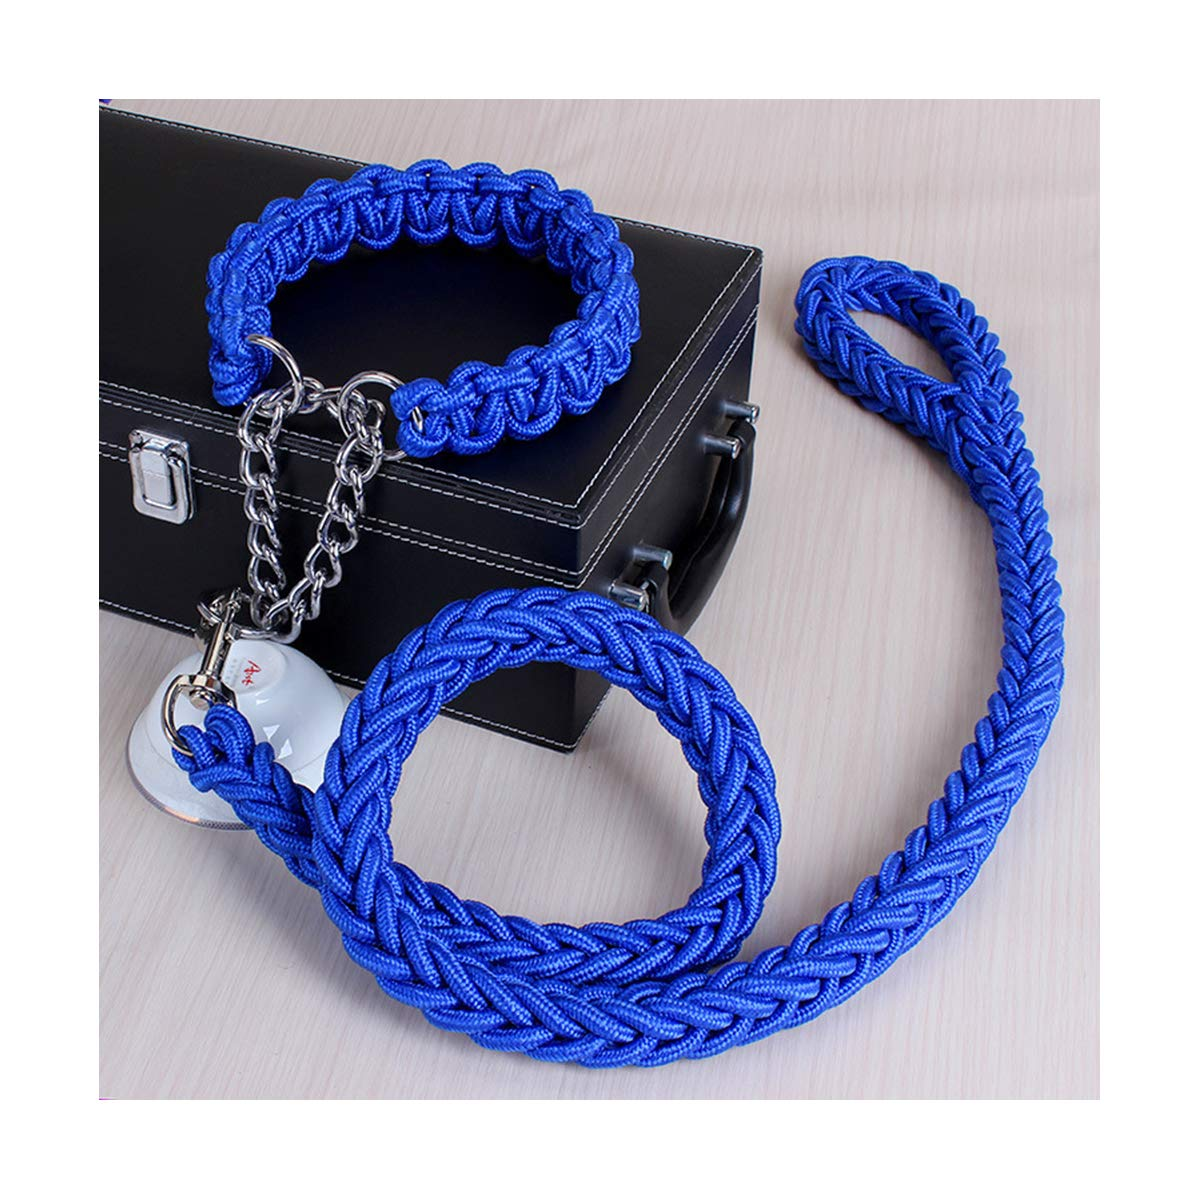 bluee XL bluee XL Dog Lead Leash Traction Rope,Nylon 1.3m Pet Dog Leash, Durable,Walking can Guarantee The Safety of Dogs